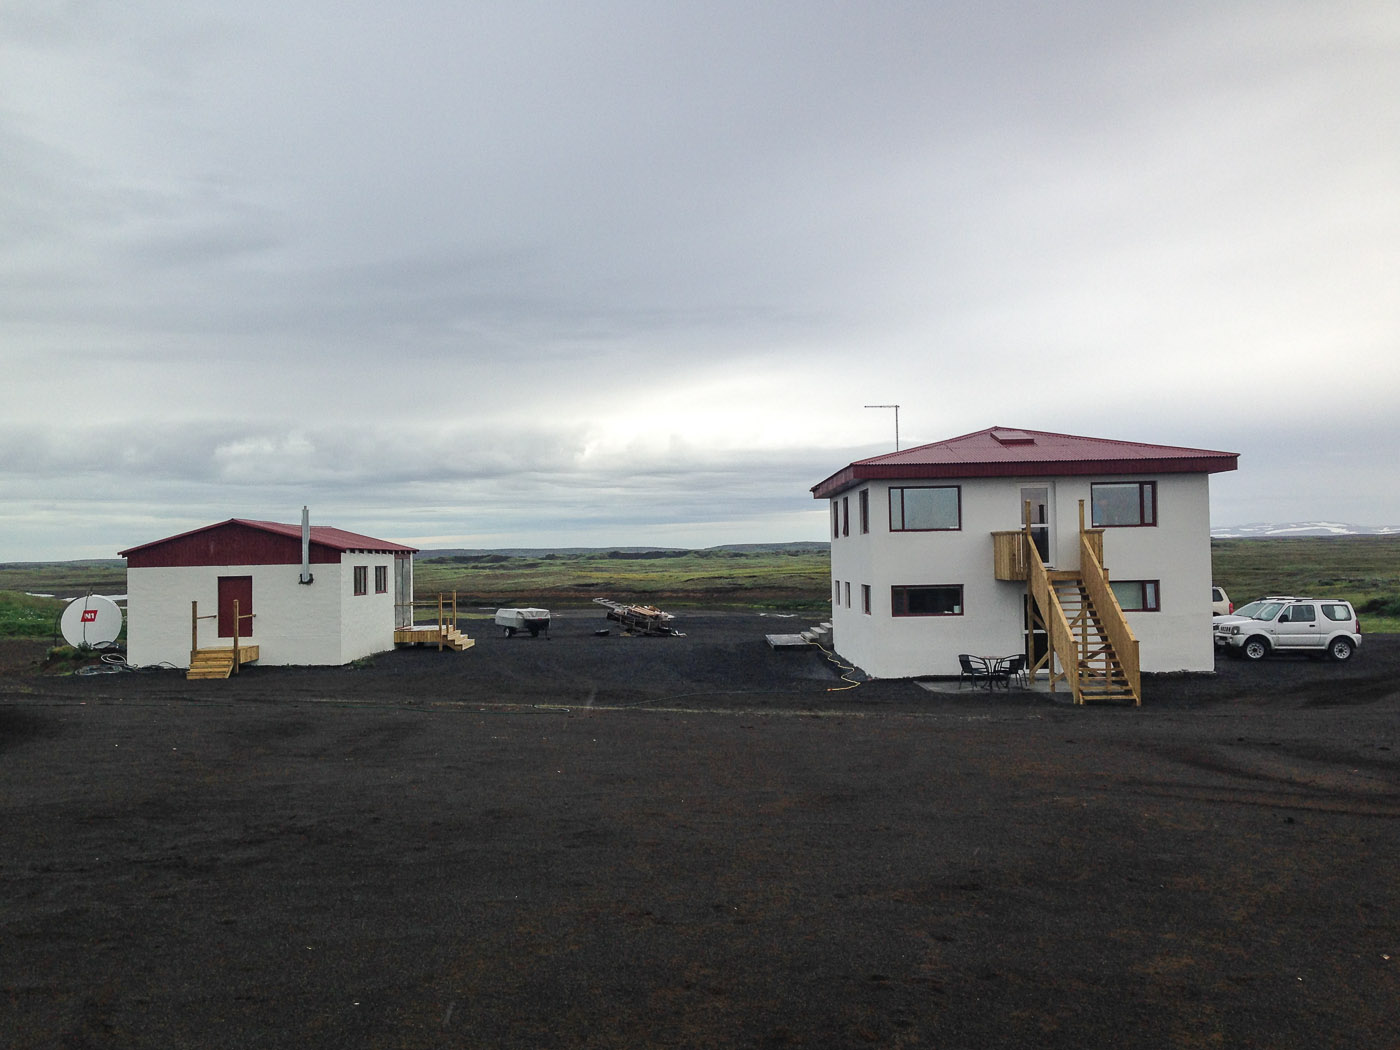 Northern Iceland - On the way to Askja. On vacation. - Our accommodation last night (the right house), strange ... (24 July 2014)